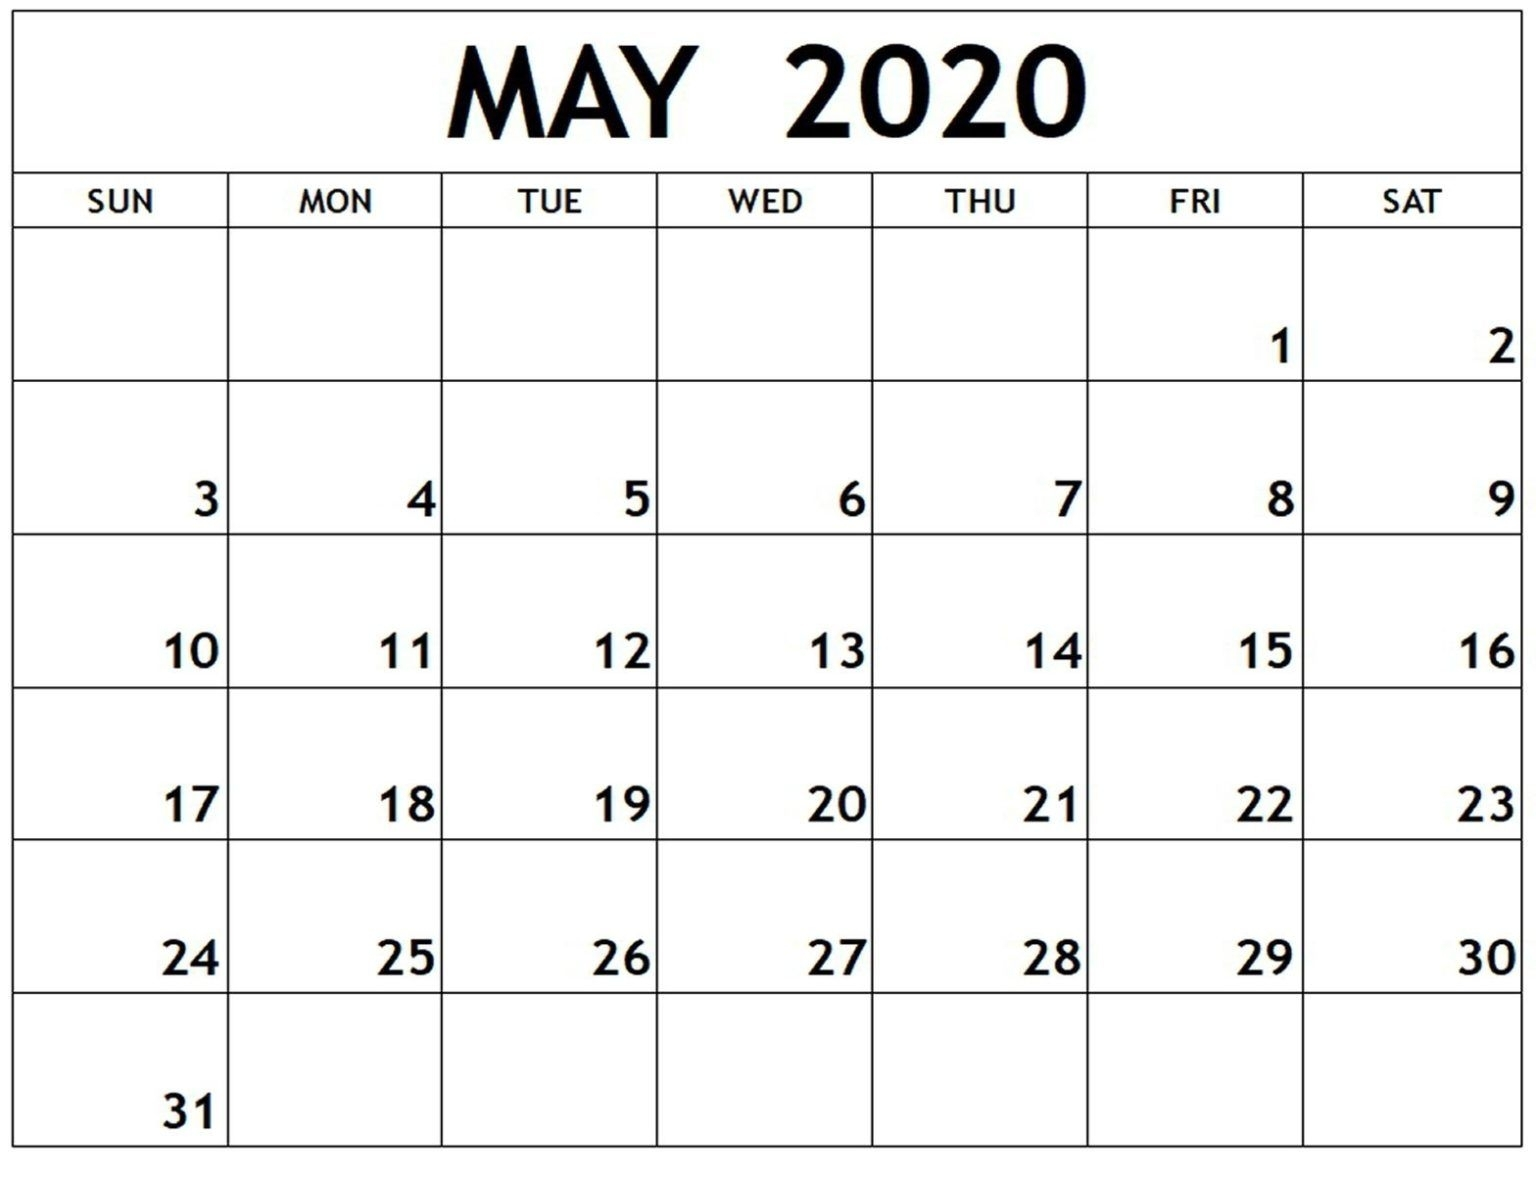 Free Printable Calendar May 2020 Download | Free Printable with Free Printable 2020 Calendars You Don't Have To Download